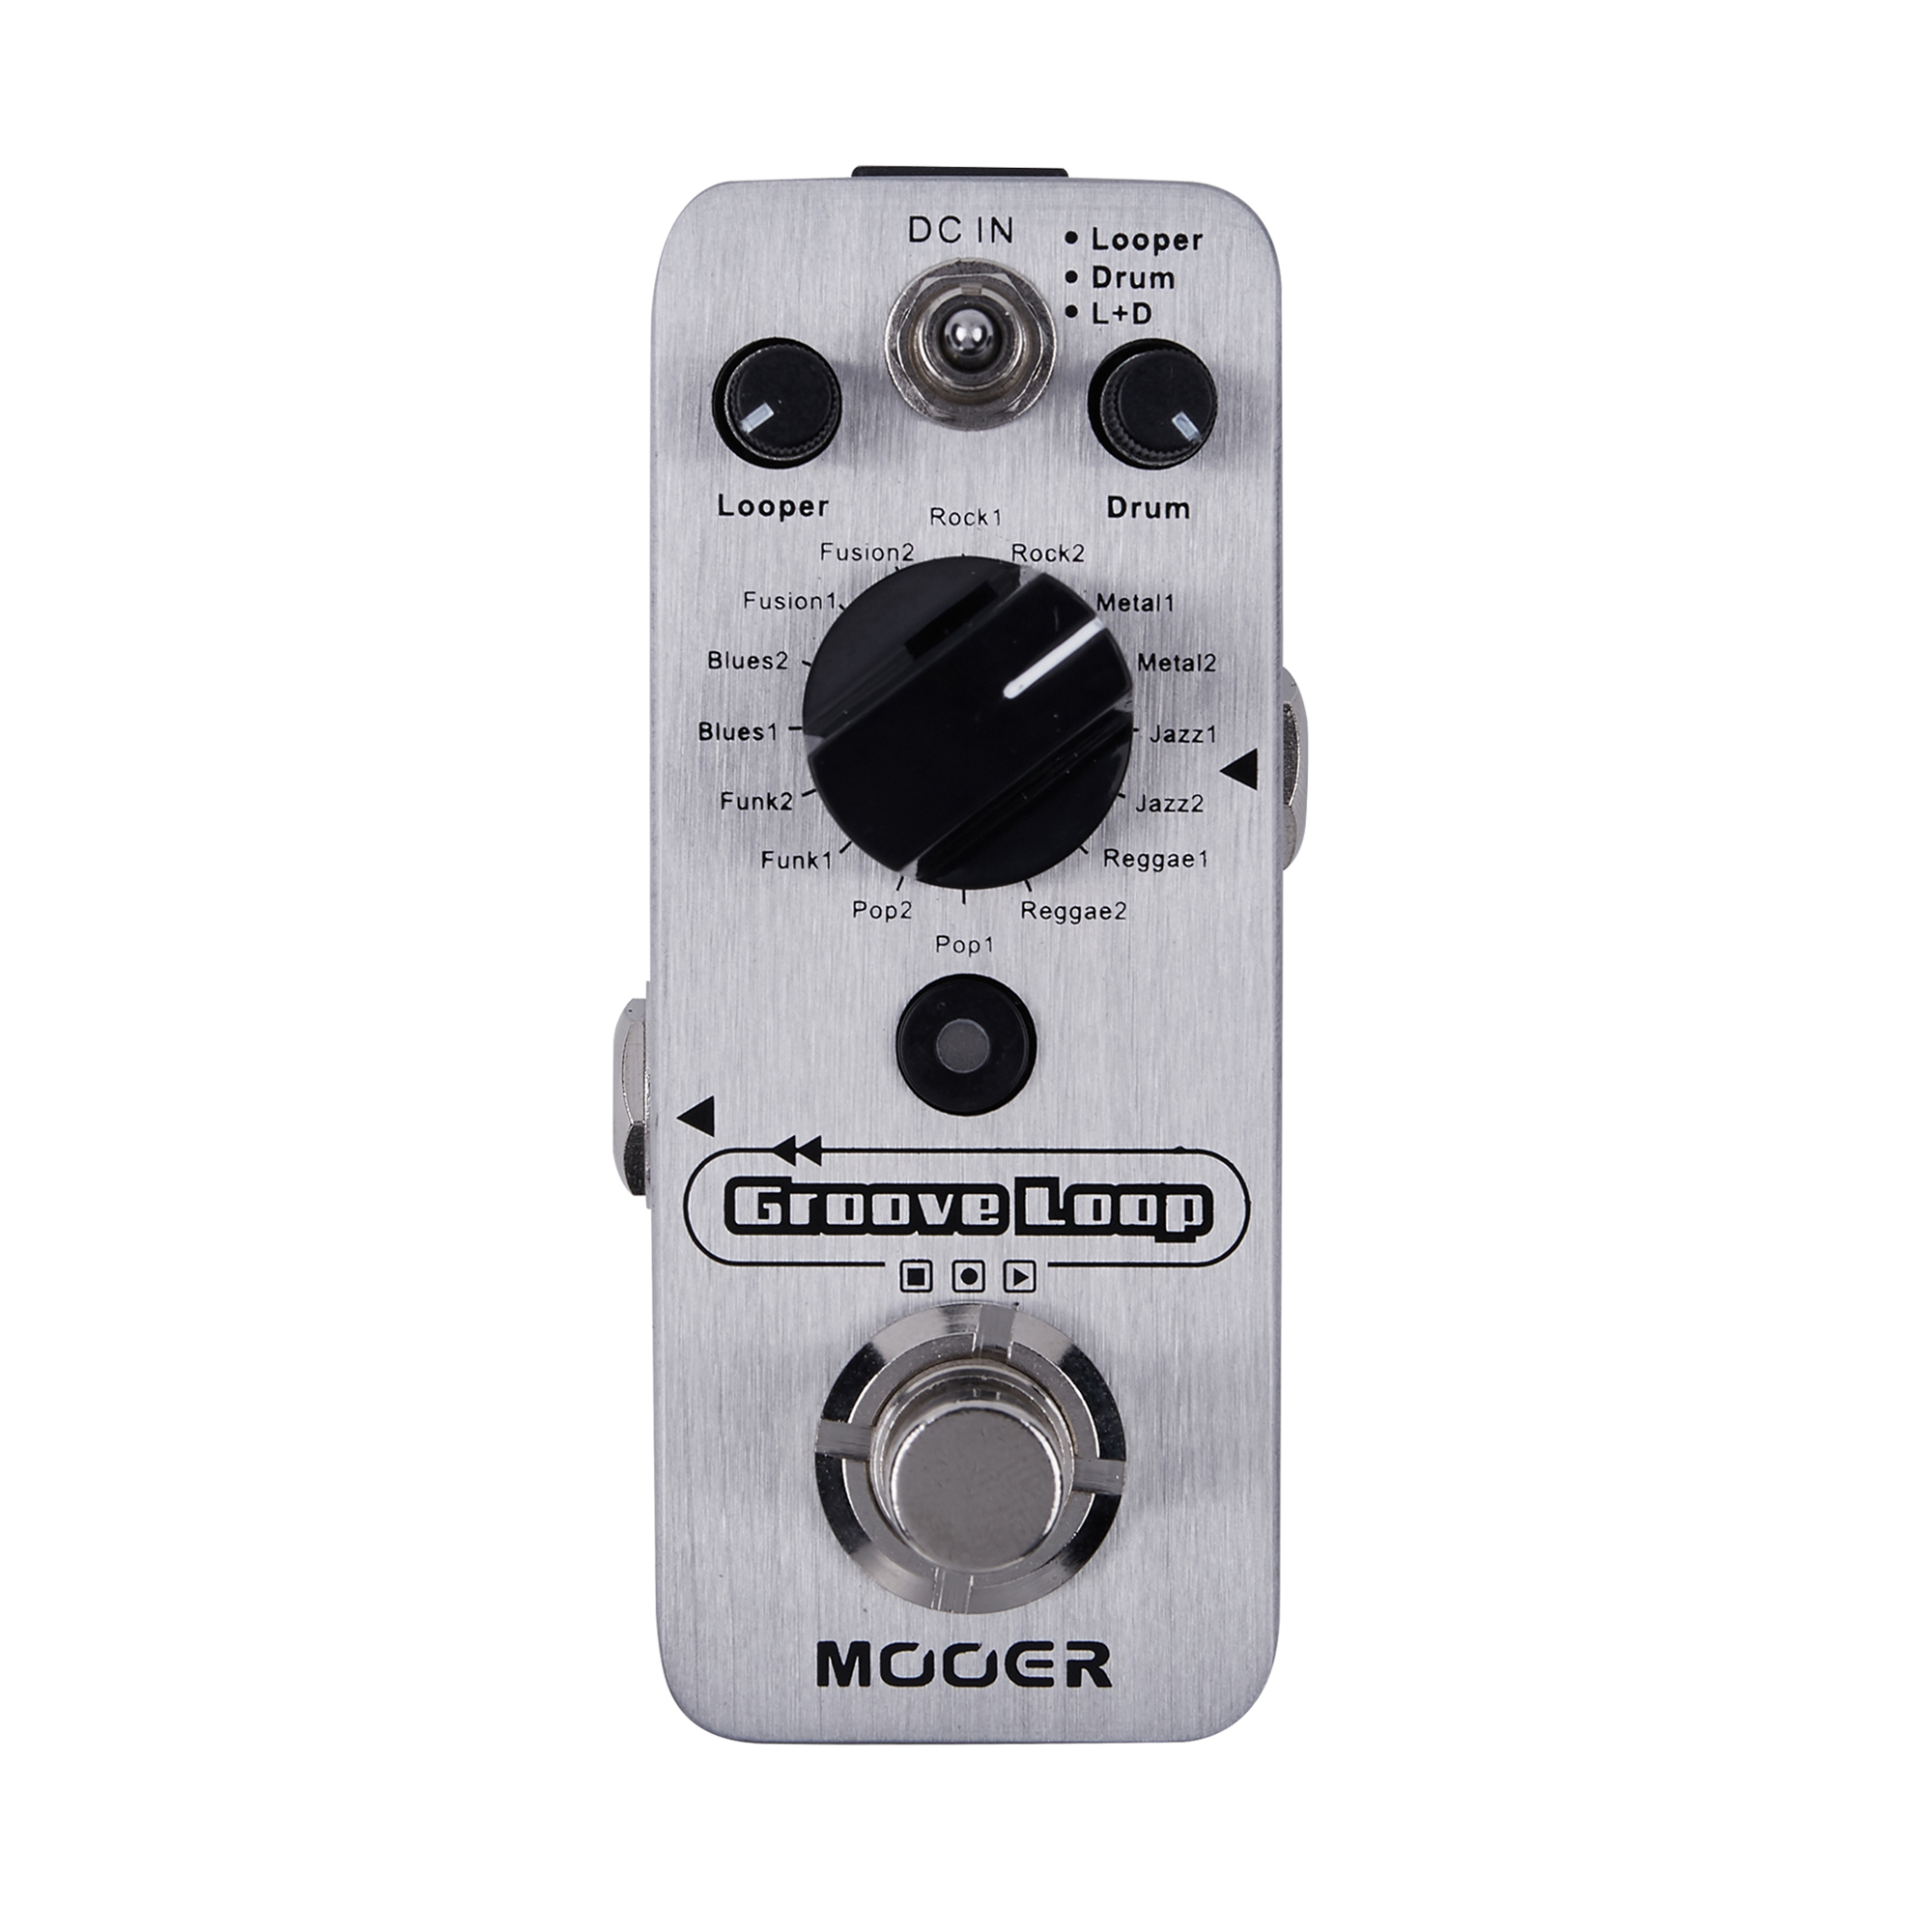 Mooer Groove Loop Tap Tempo Control Guitar Effects Pedal Acoustic Electric Bass Guitar Drum Machine electric guitar effector multi function guitar composition upgrade stylesound tuner drum machine integrated digital effects